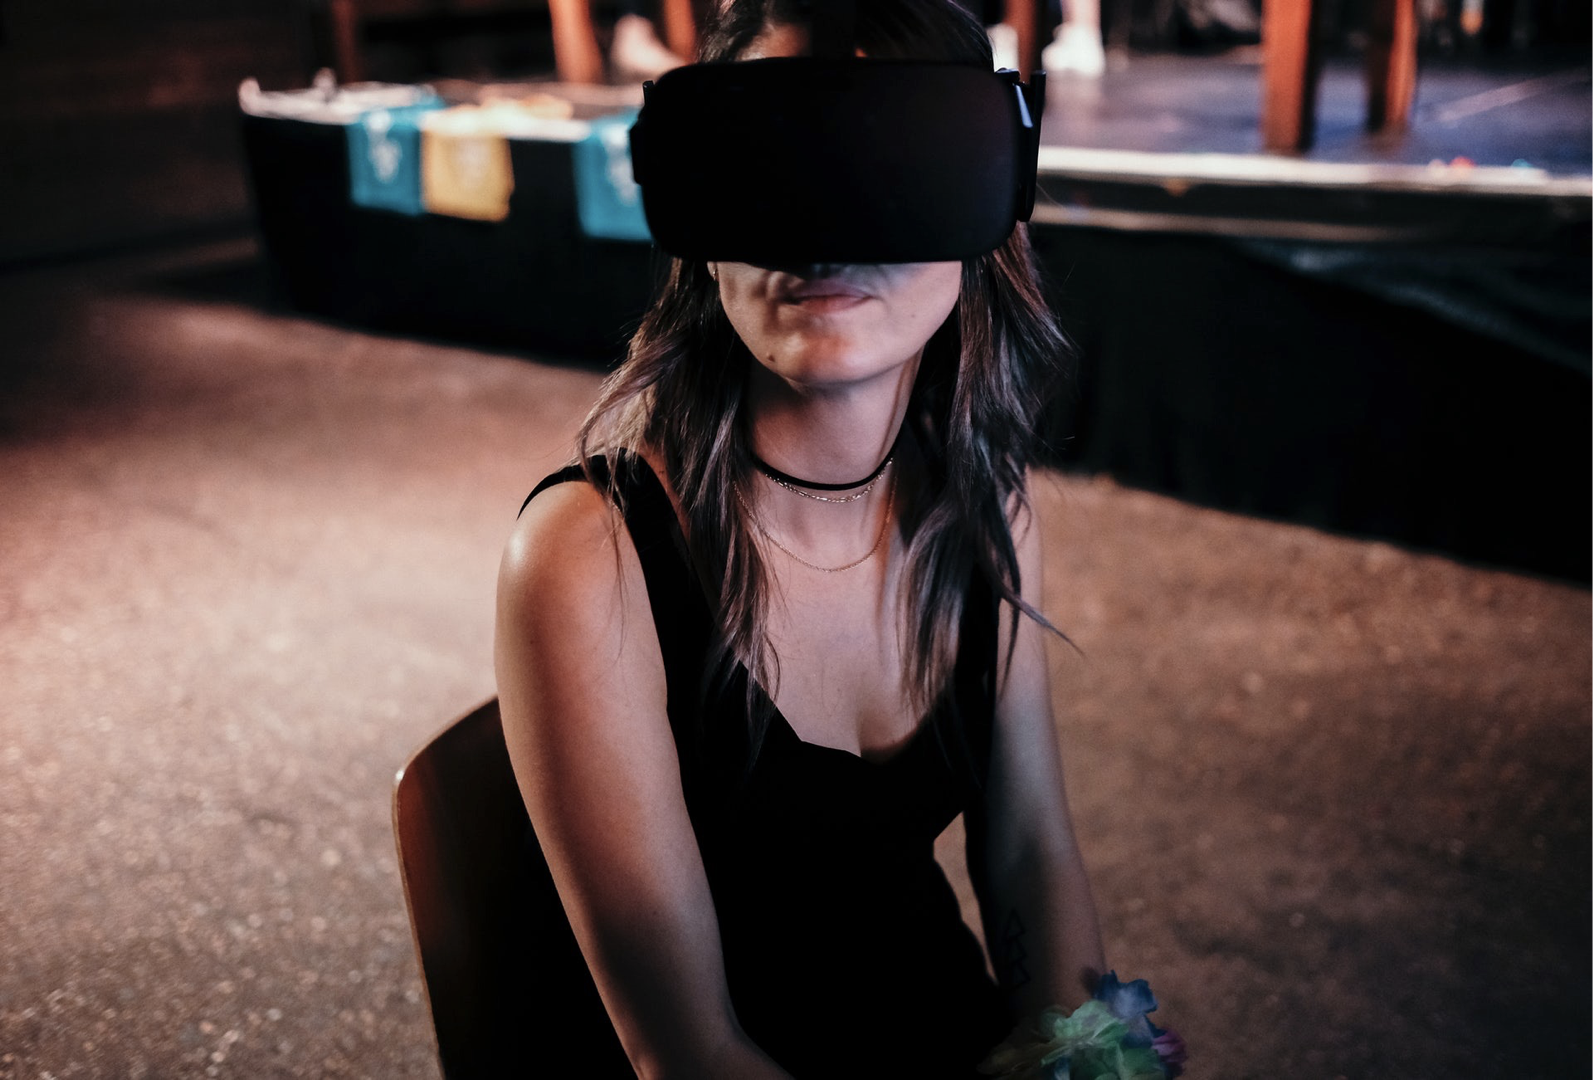 A World of Virtual Reality Content. Controlled by Voice. - Client Project